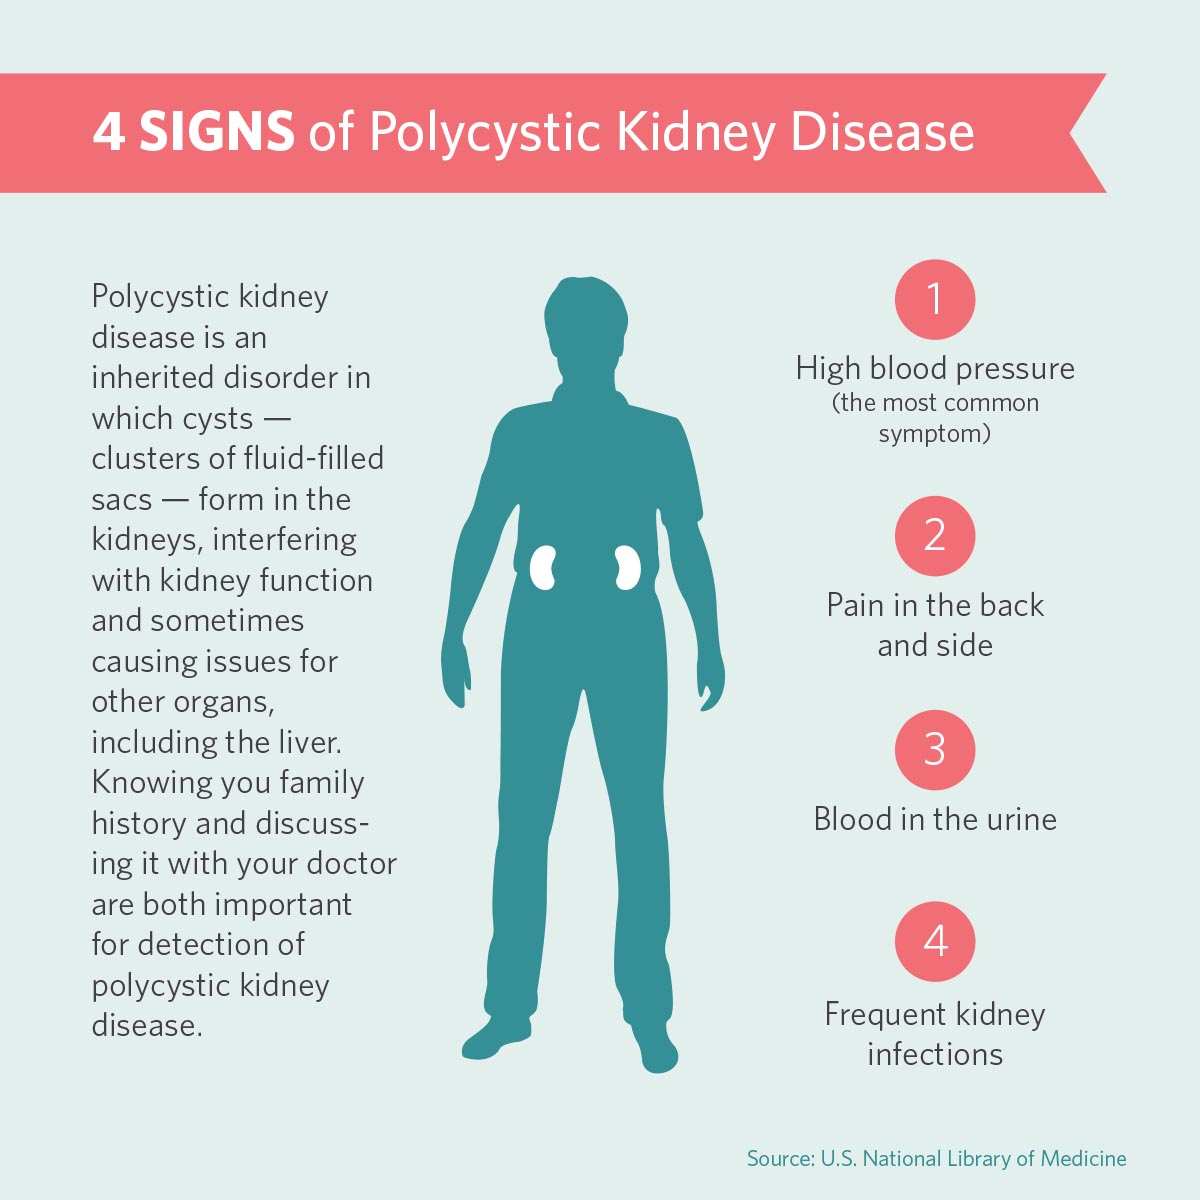 Signs Of Polycystic Kidney Disease